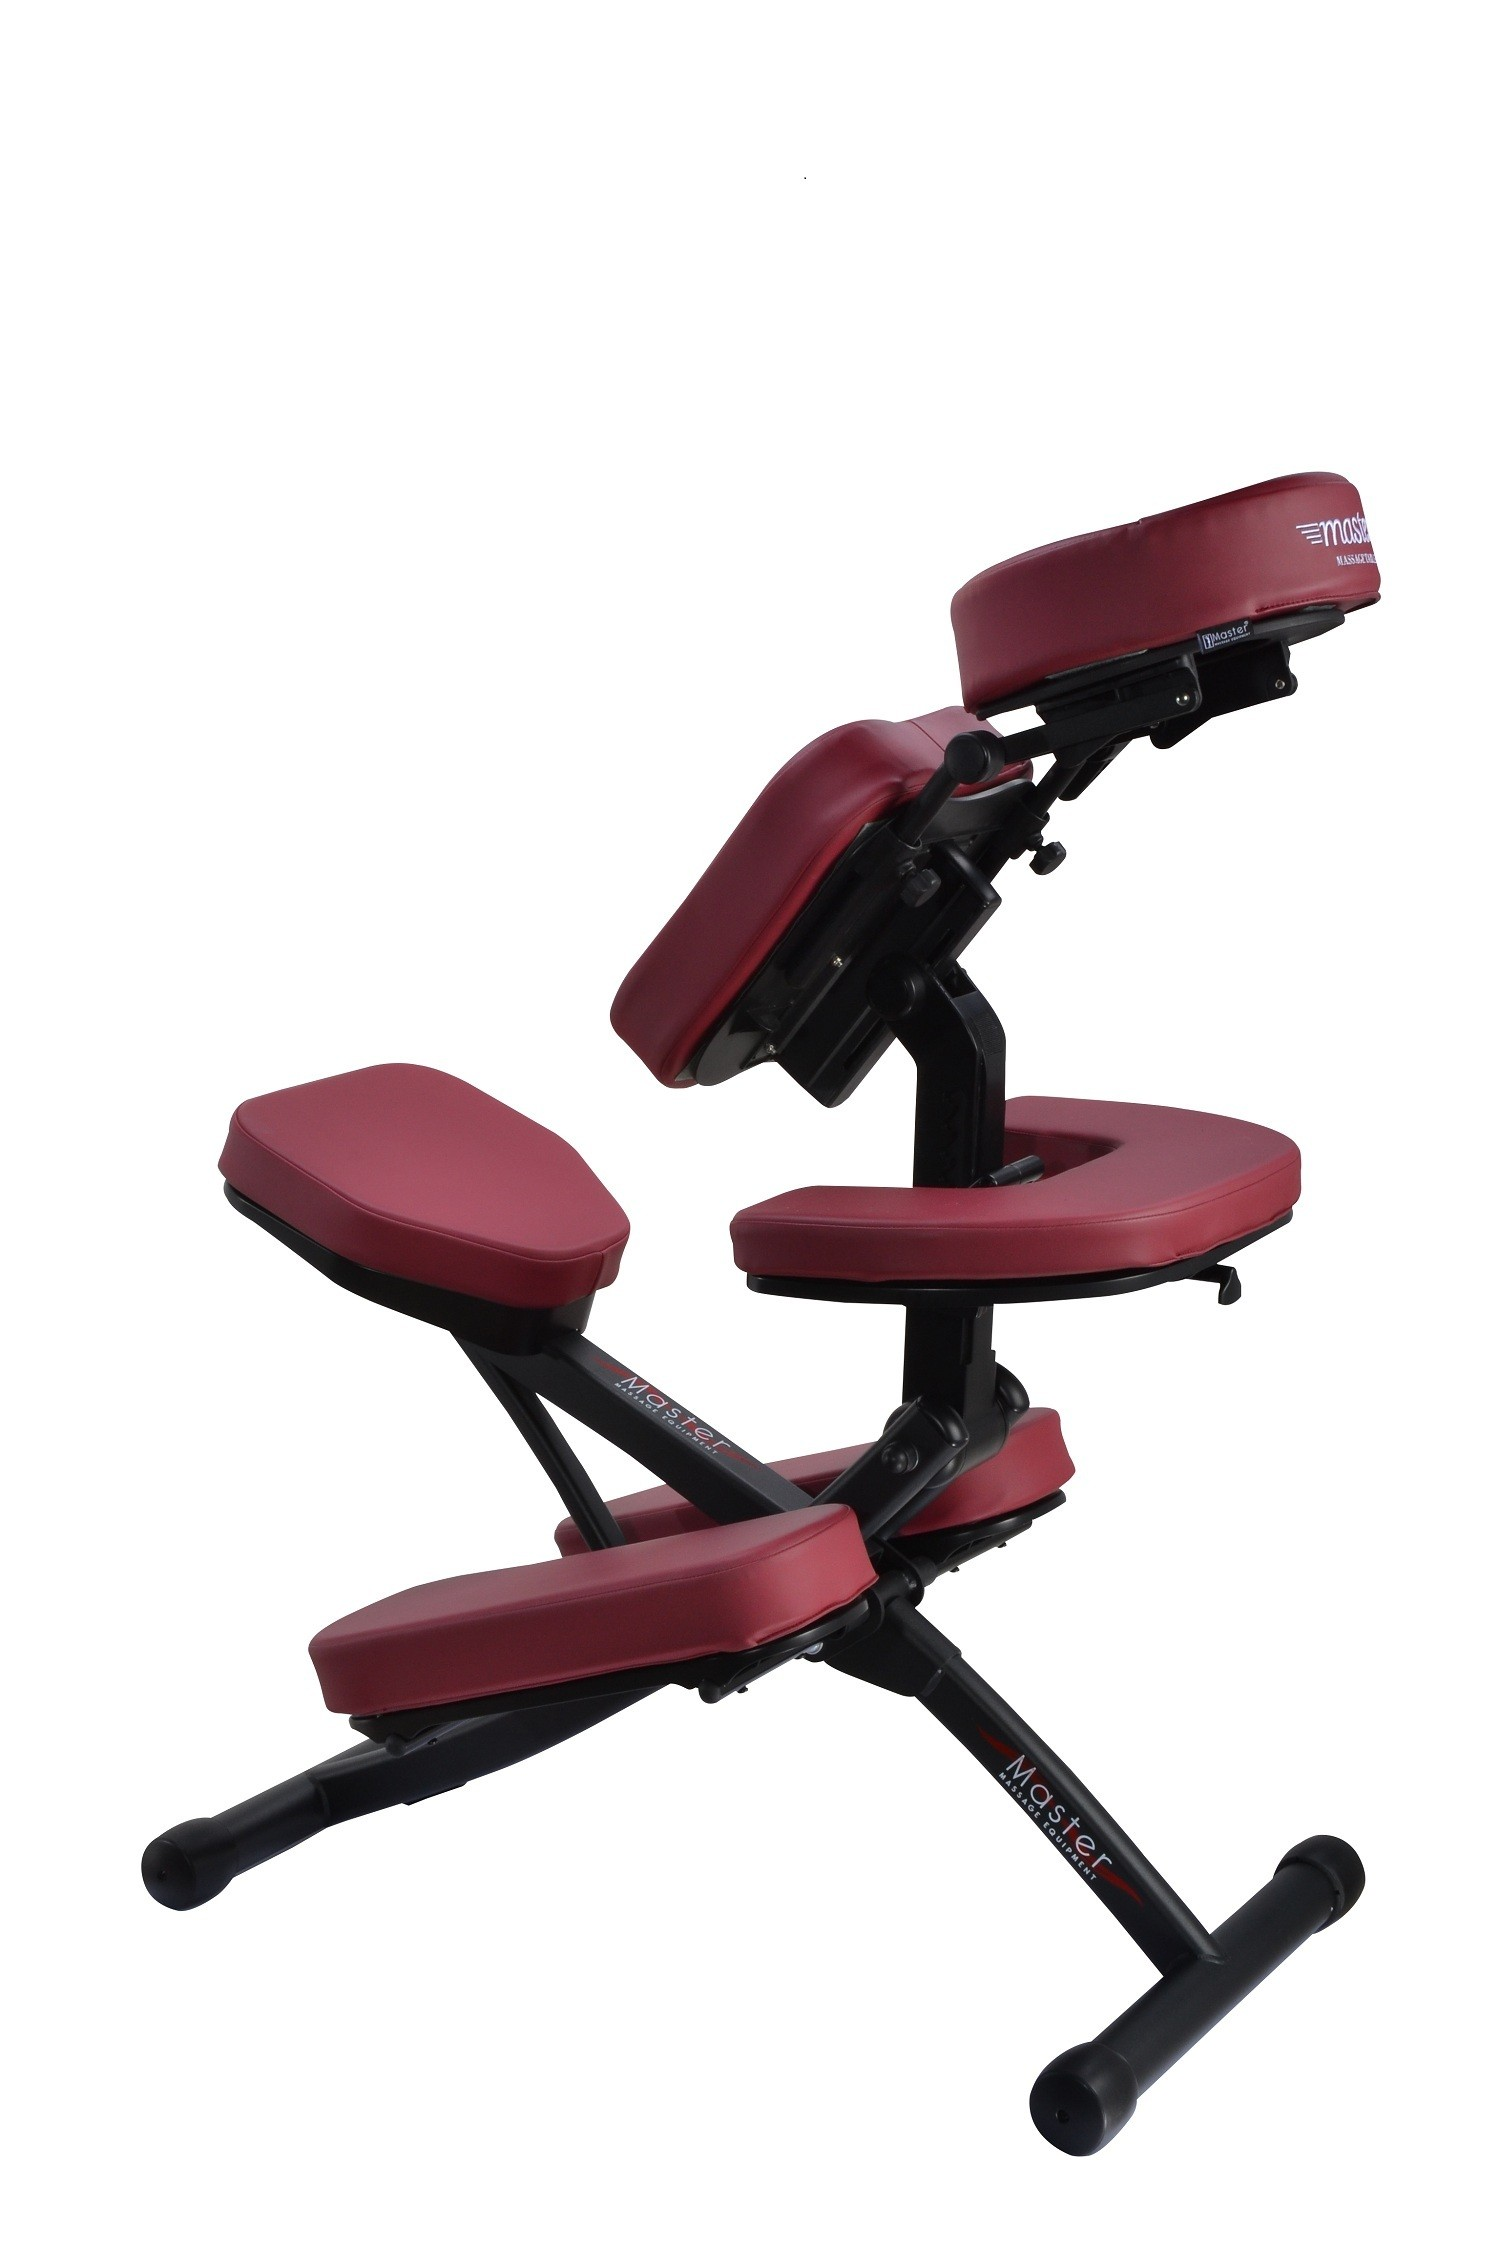 rolling chair accessories in chennai spandex covers vancouver rio portable folding massage for spa tattoo w